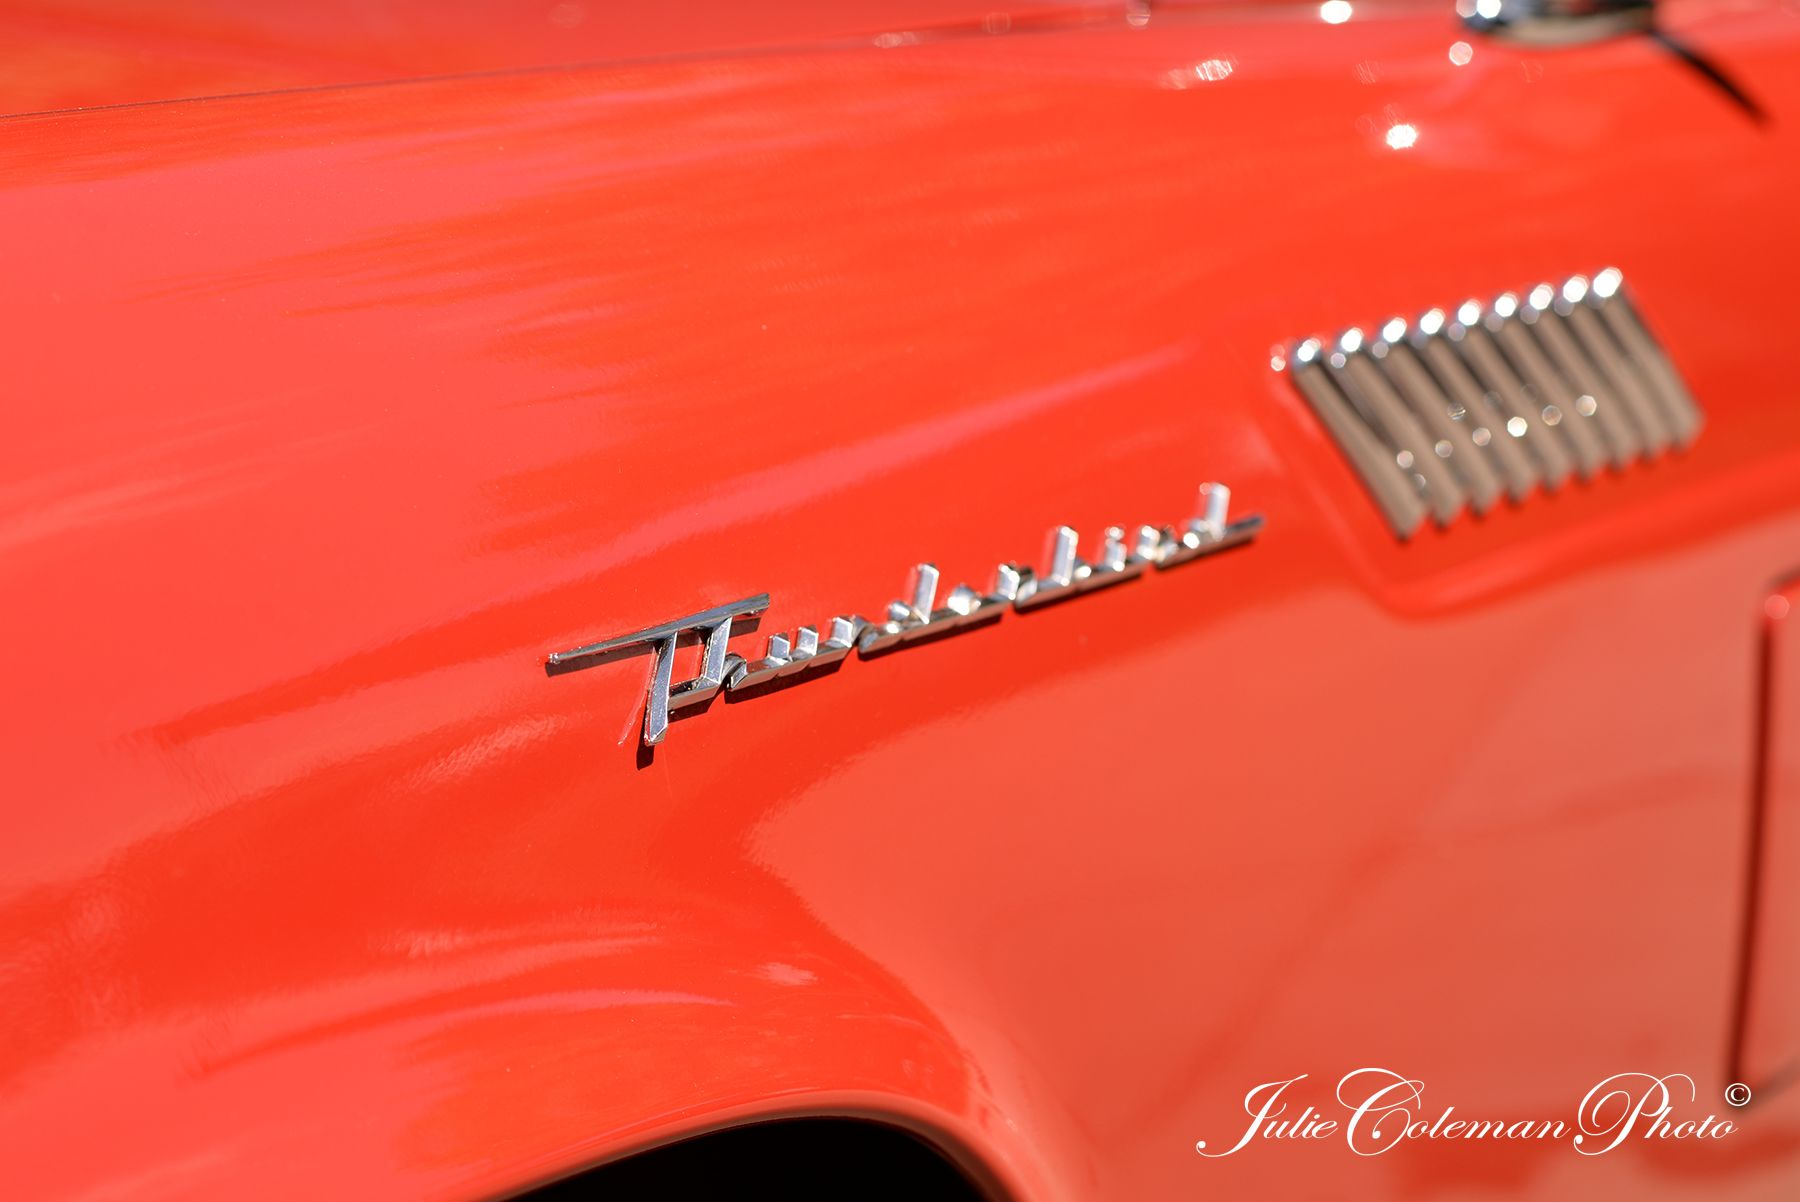 Classic car show. Photography by Julie Coleman